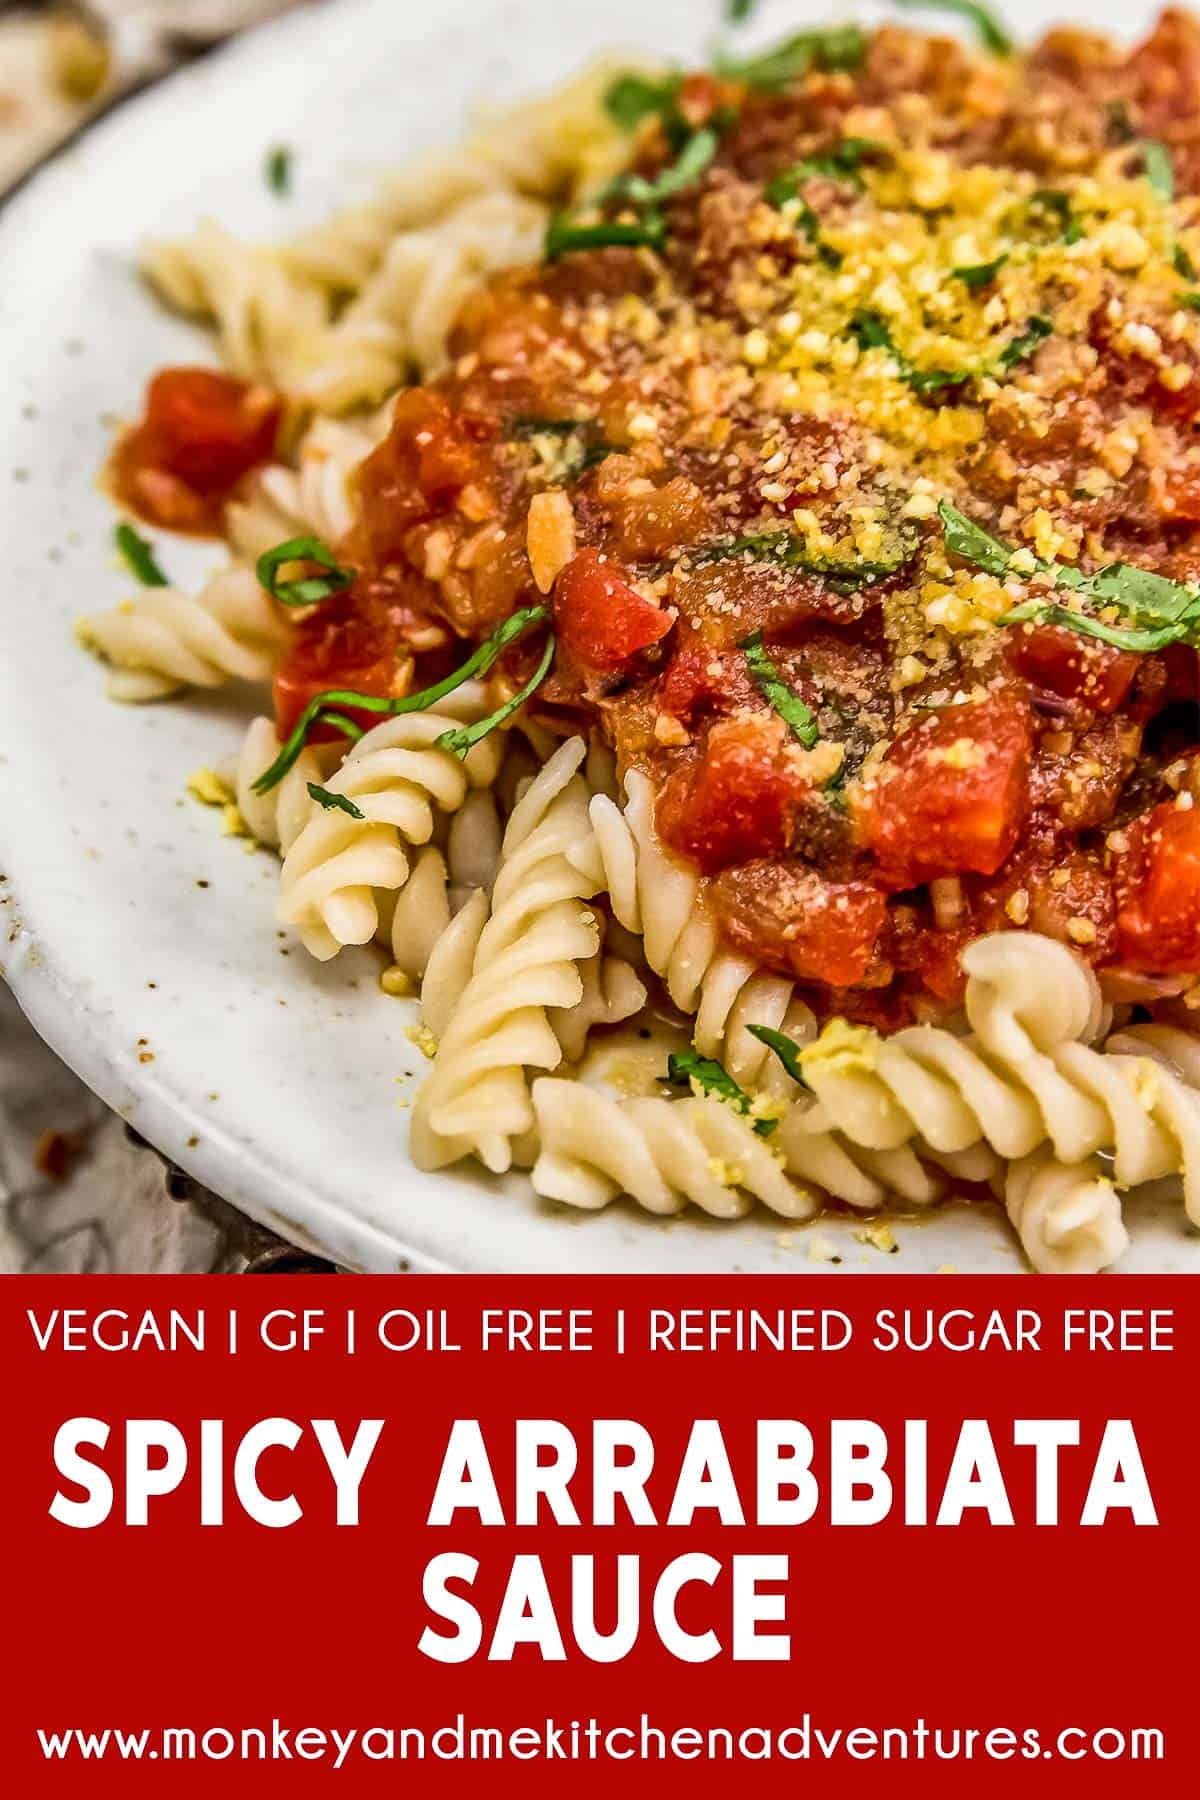 Spicy Arrabbiata Sauce with text description